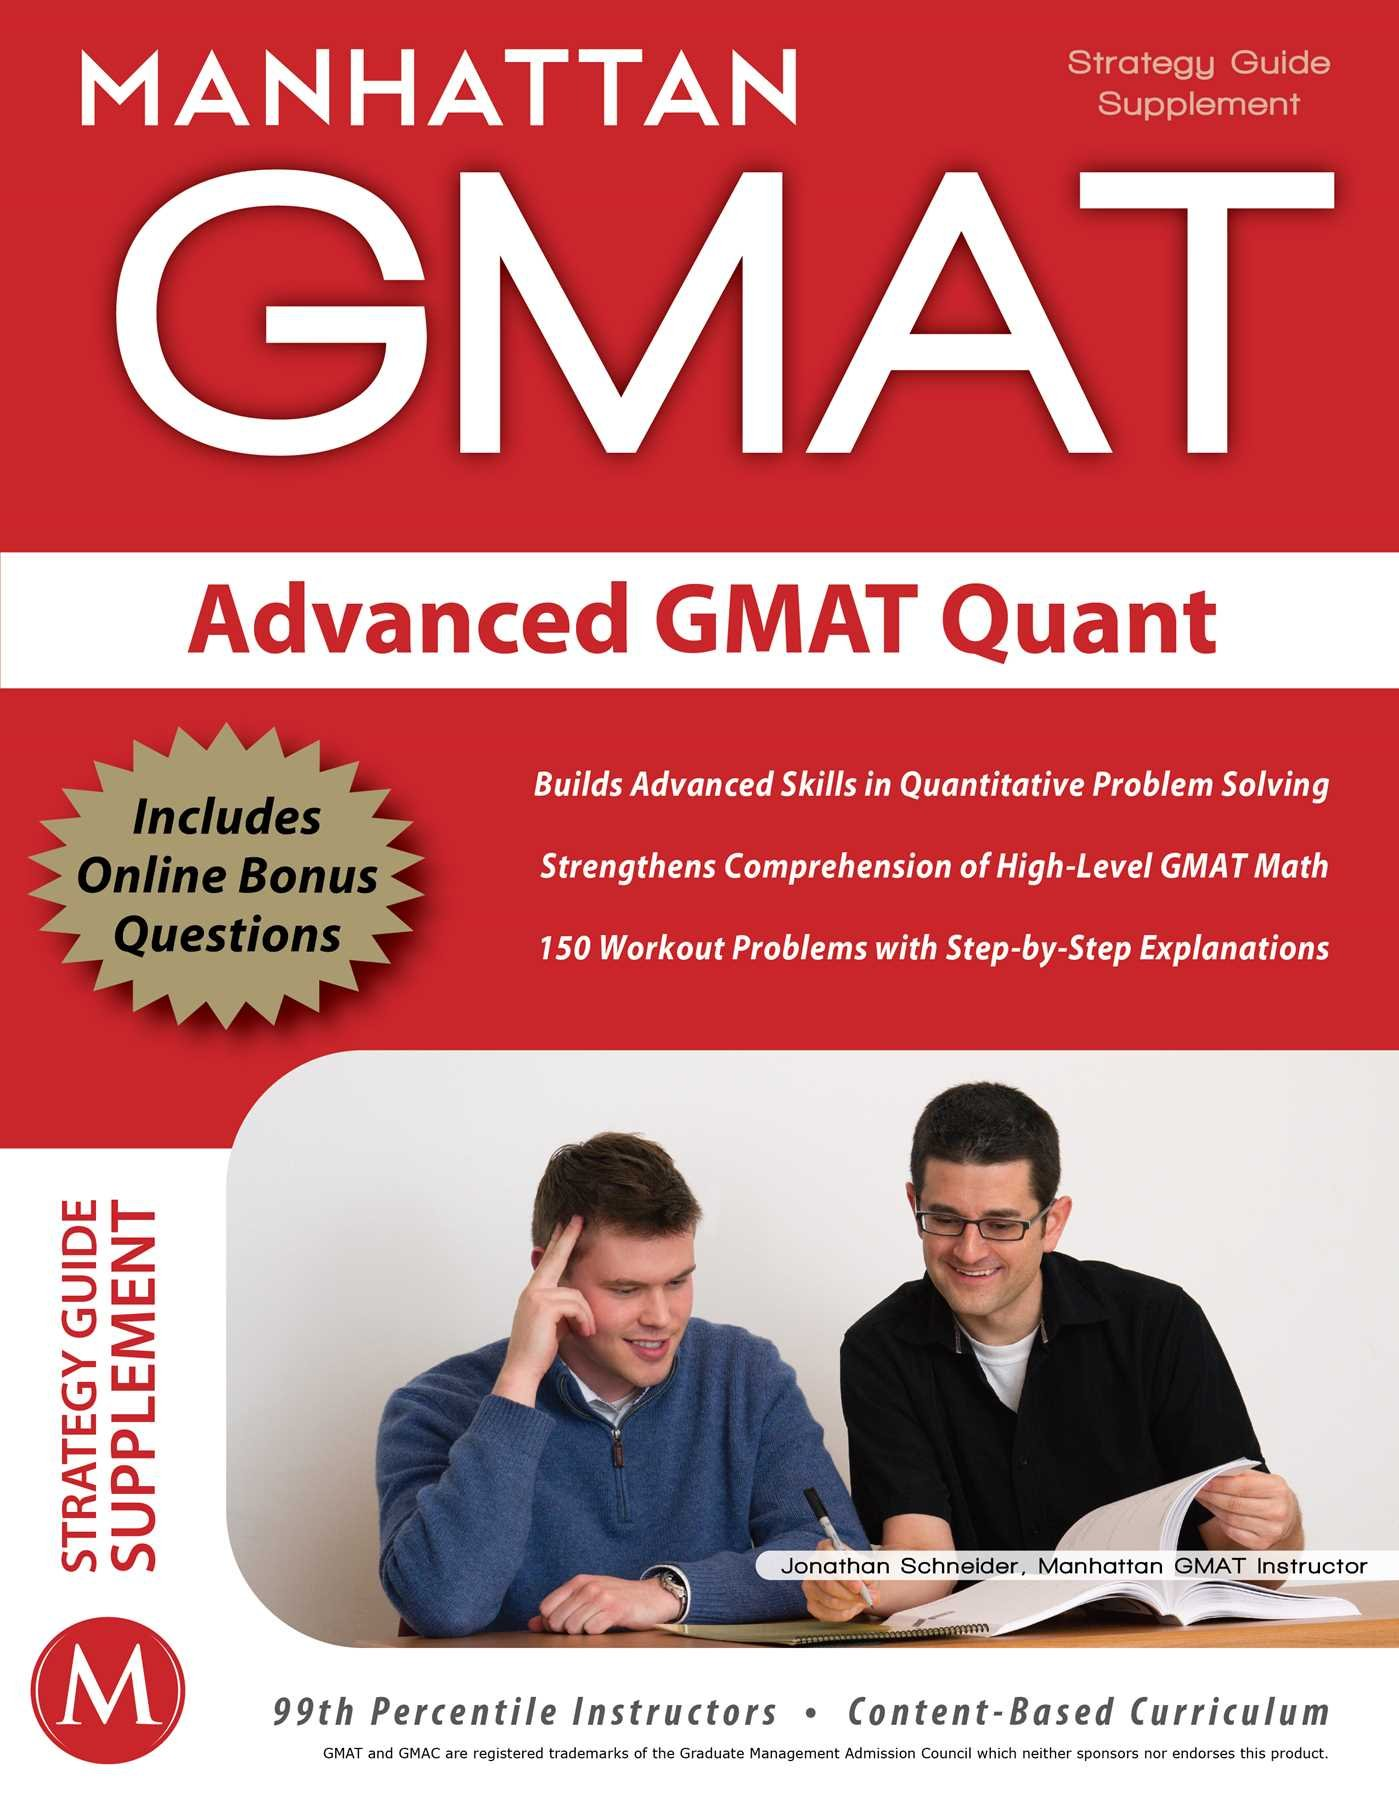 Image OfAdvanced GMAT Quant (Manhattan Prep GMAT Strategy Guides)